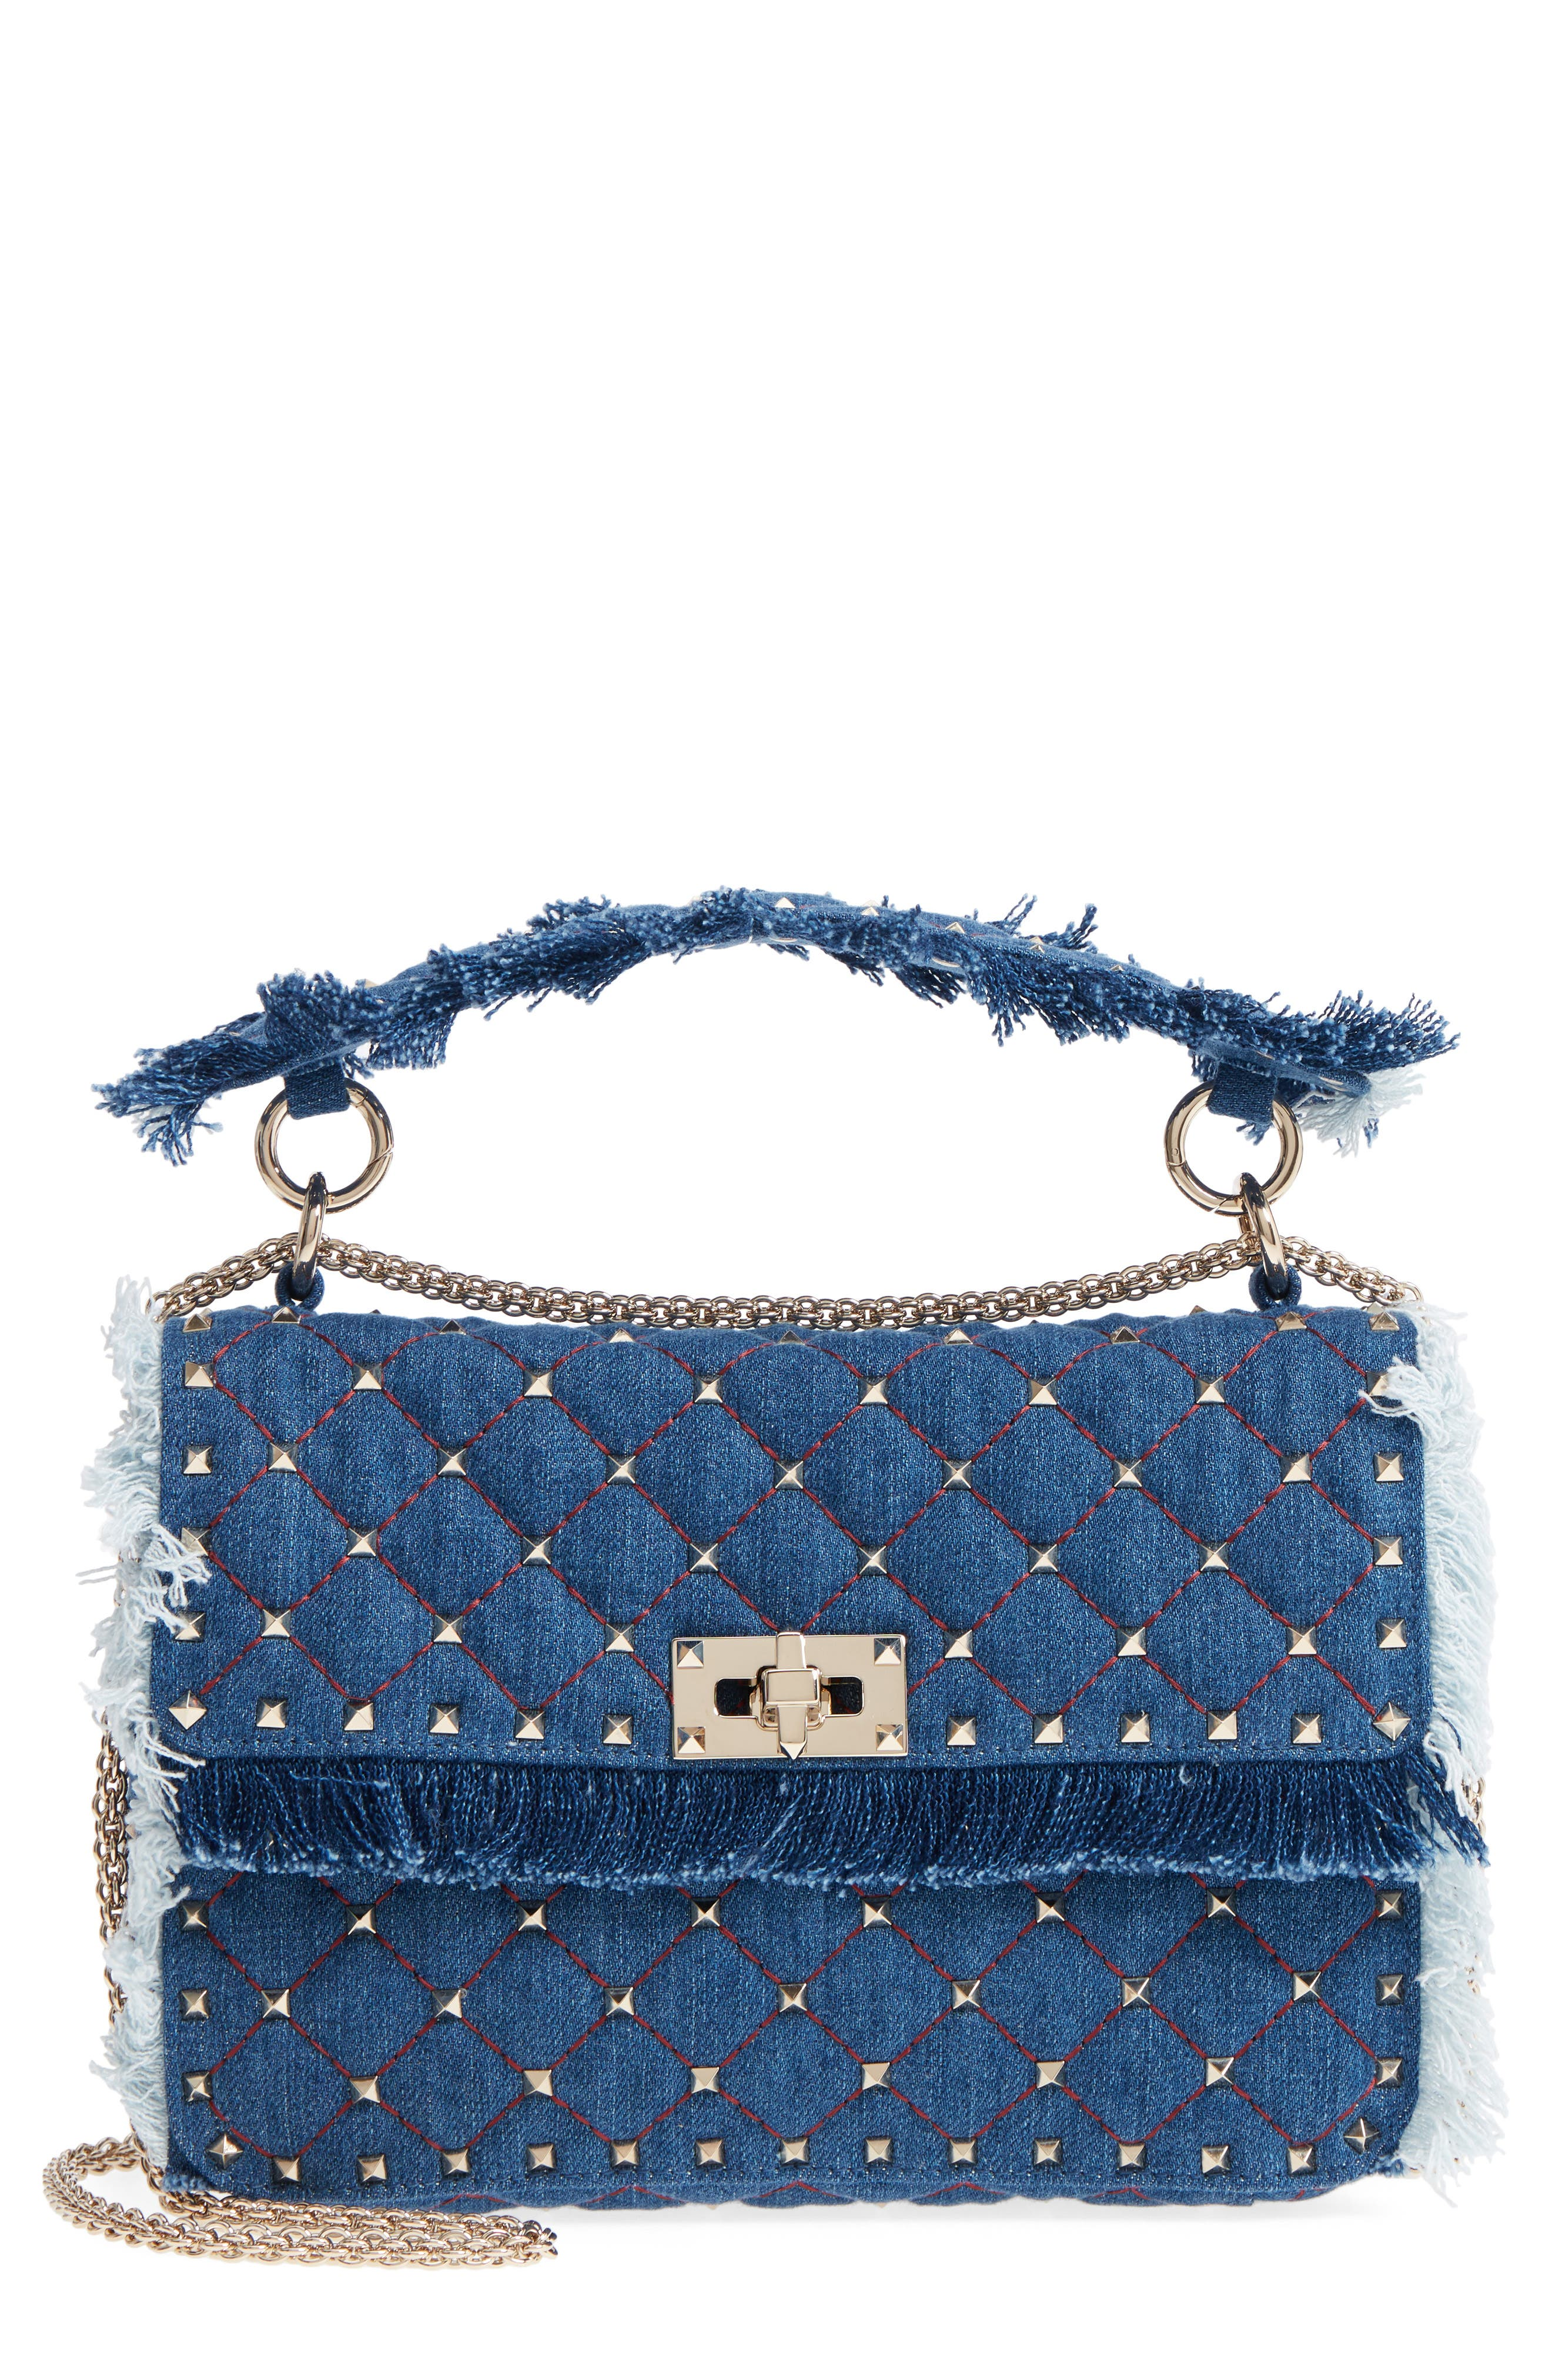 Rockstud Spike Medium Shoulder Bag,                         Main,                         color, DENIM